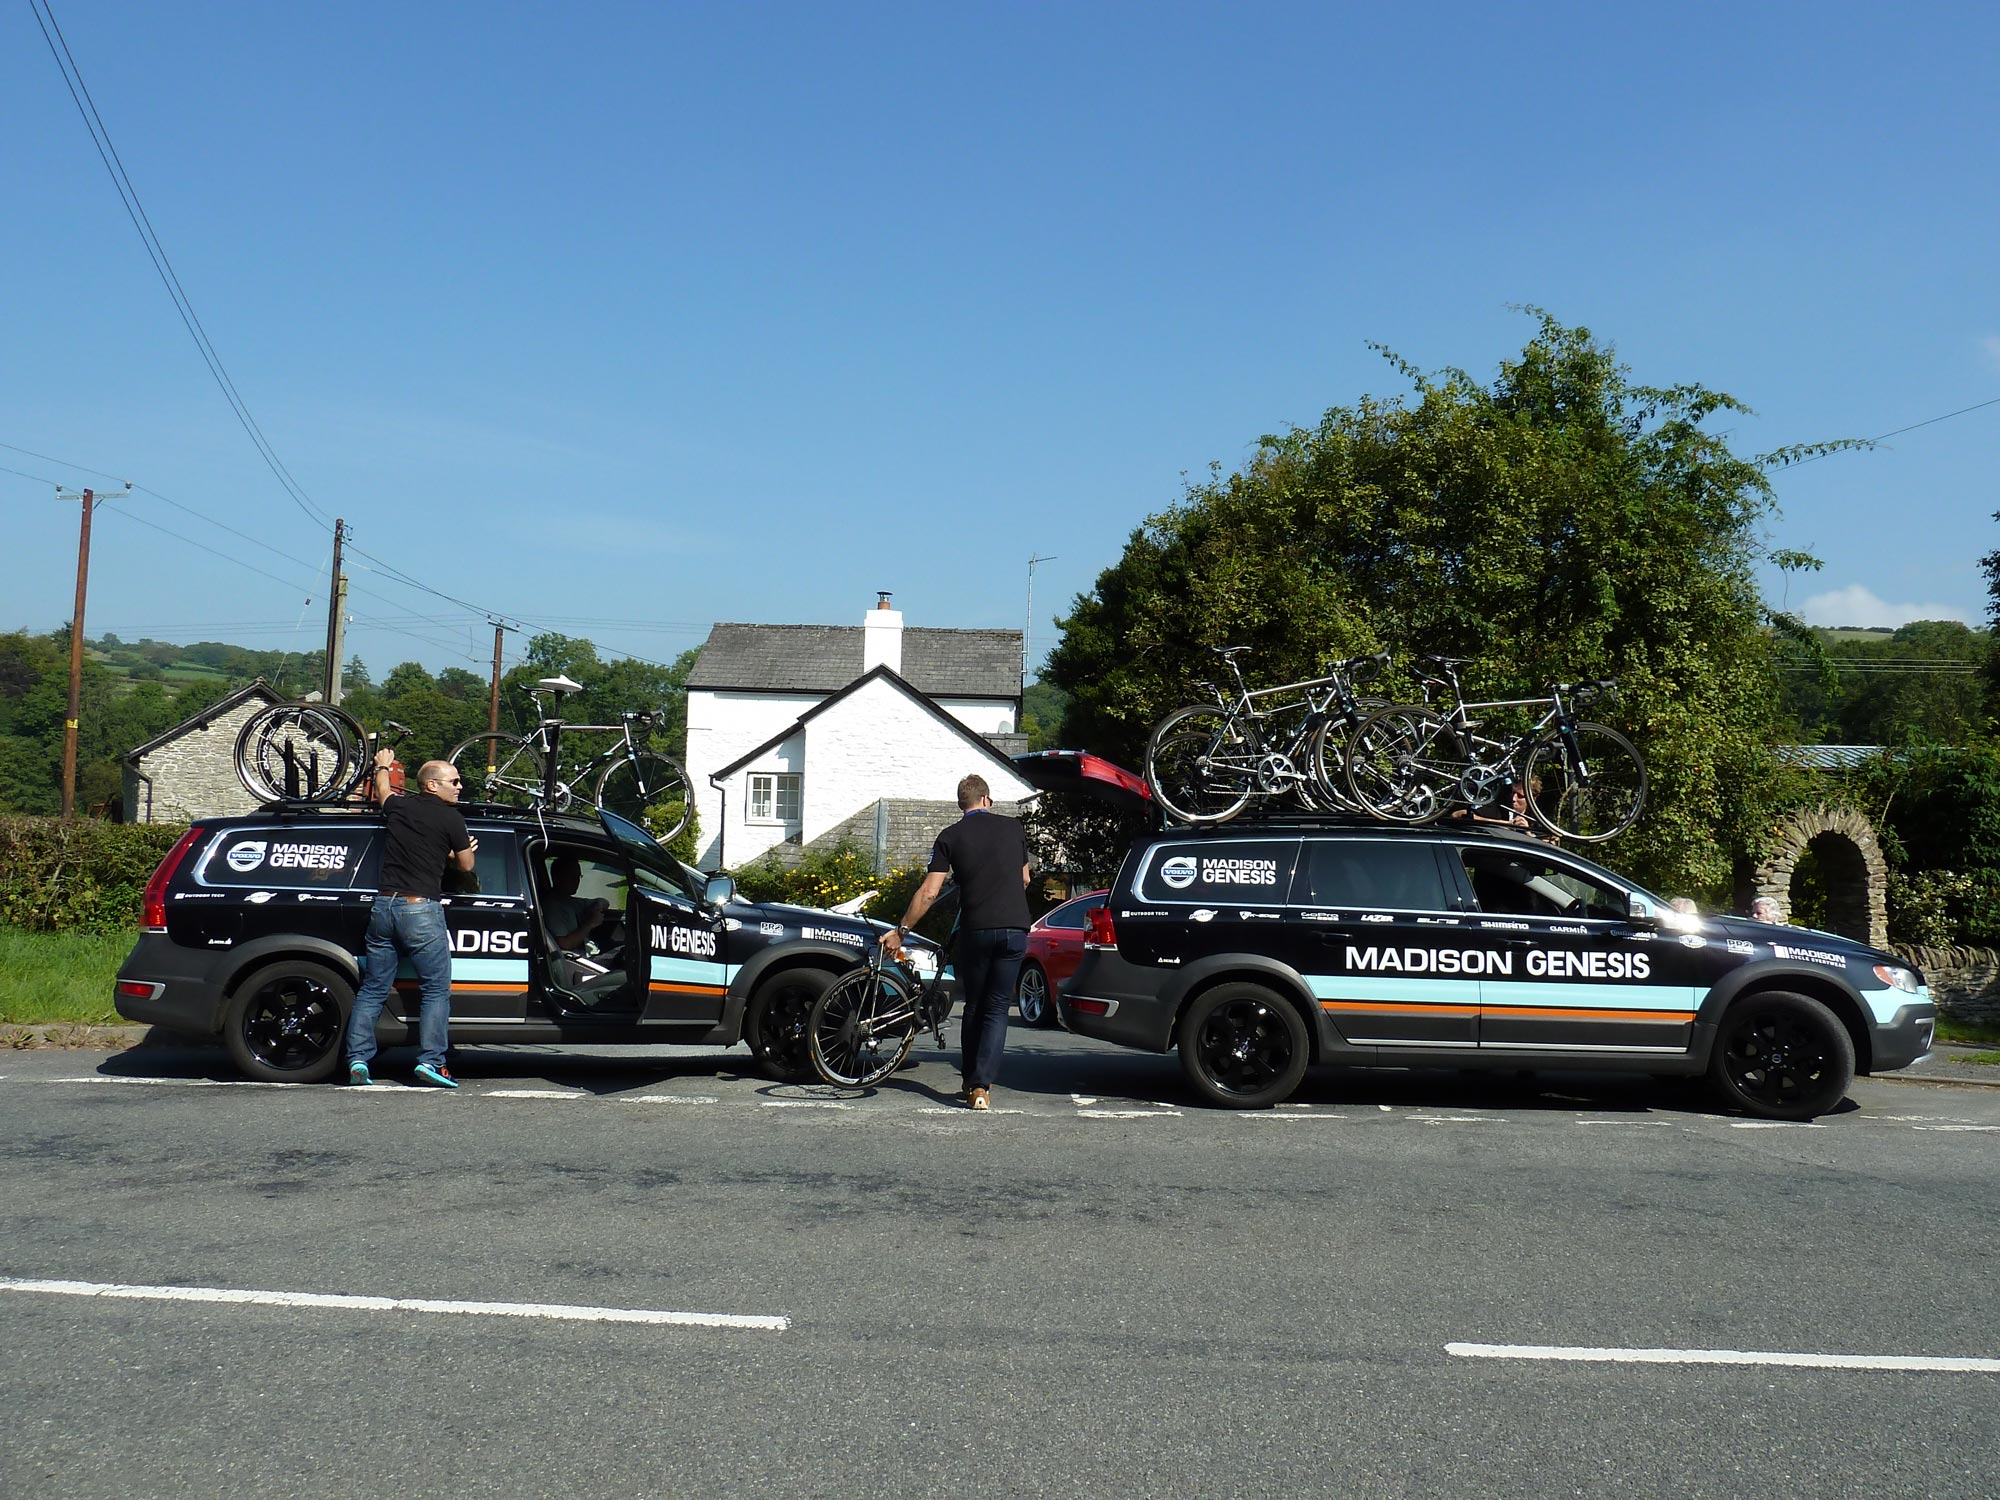 Madison Genesis team at Lloyney Mill